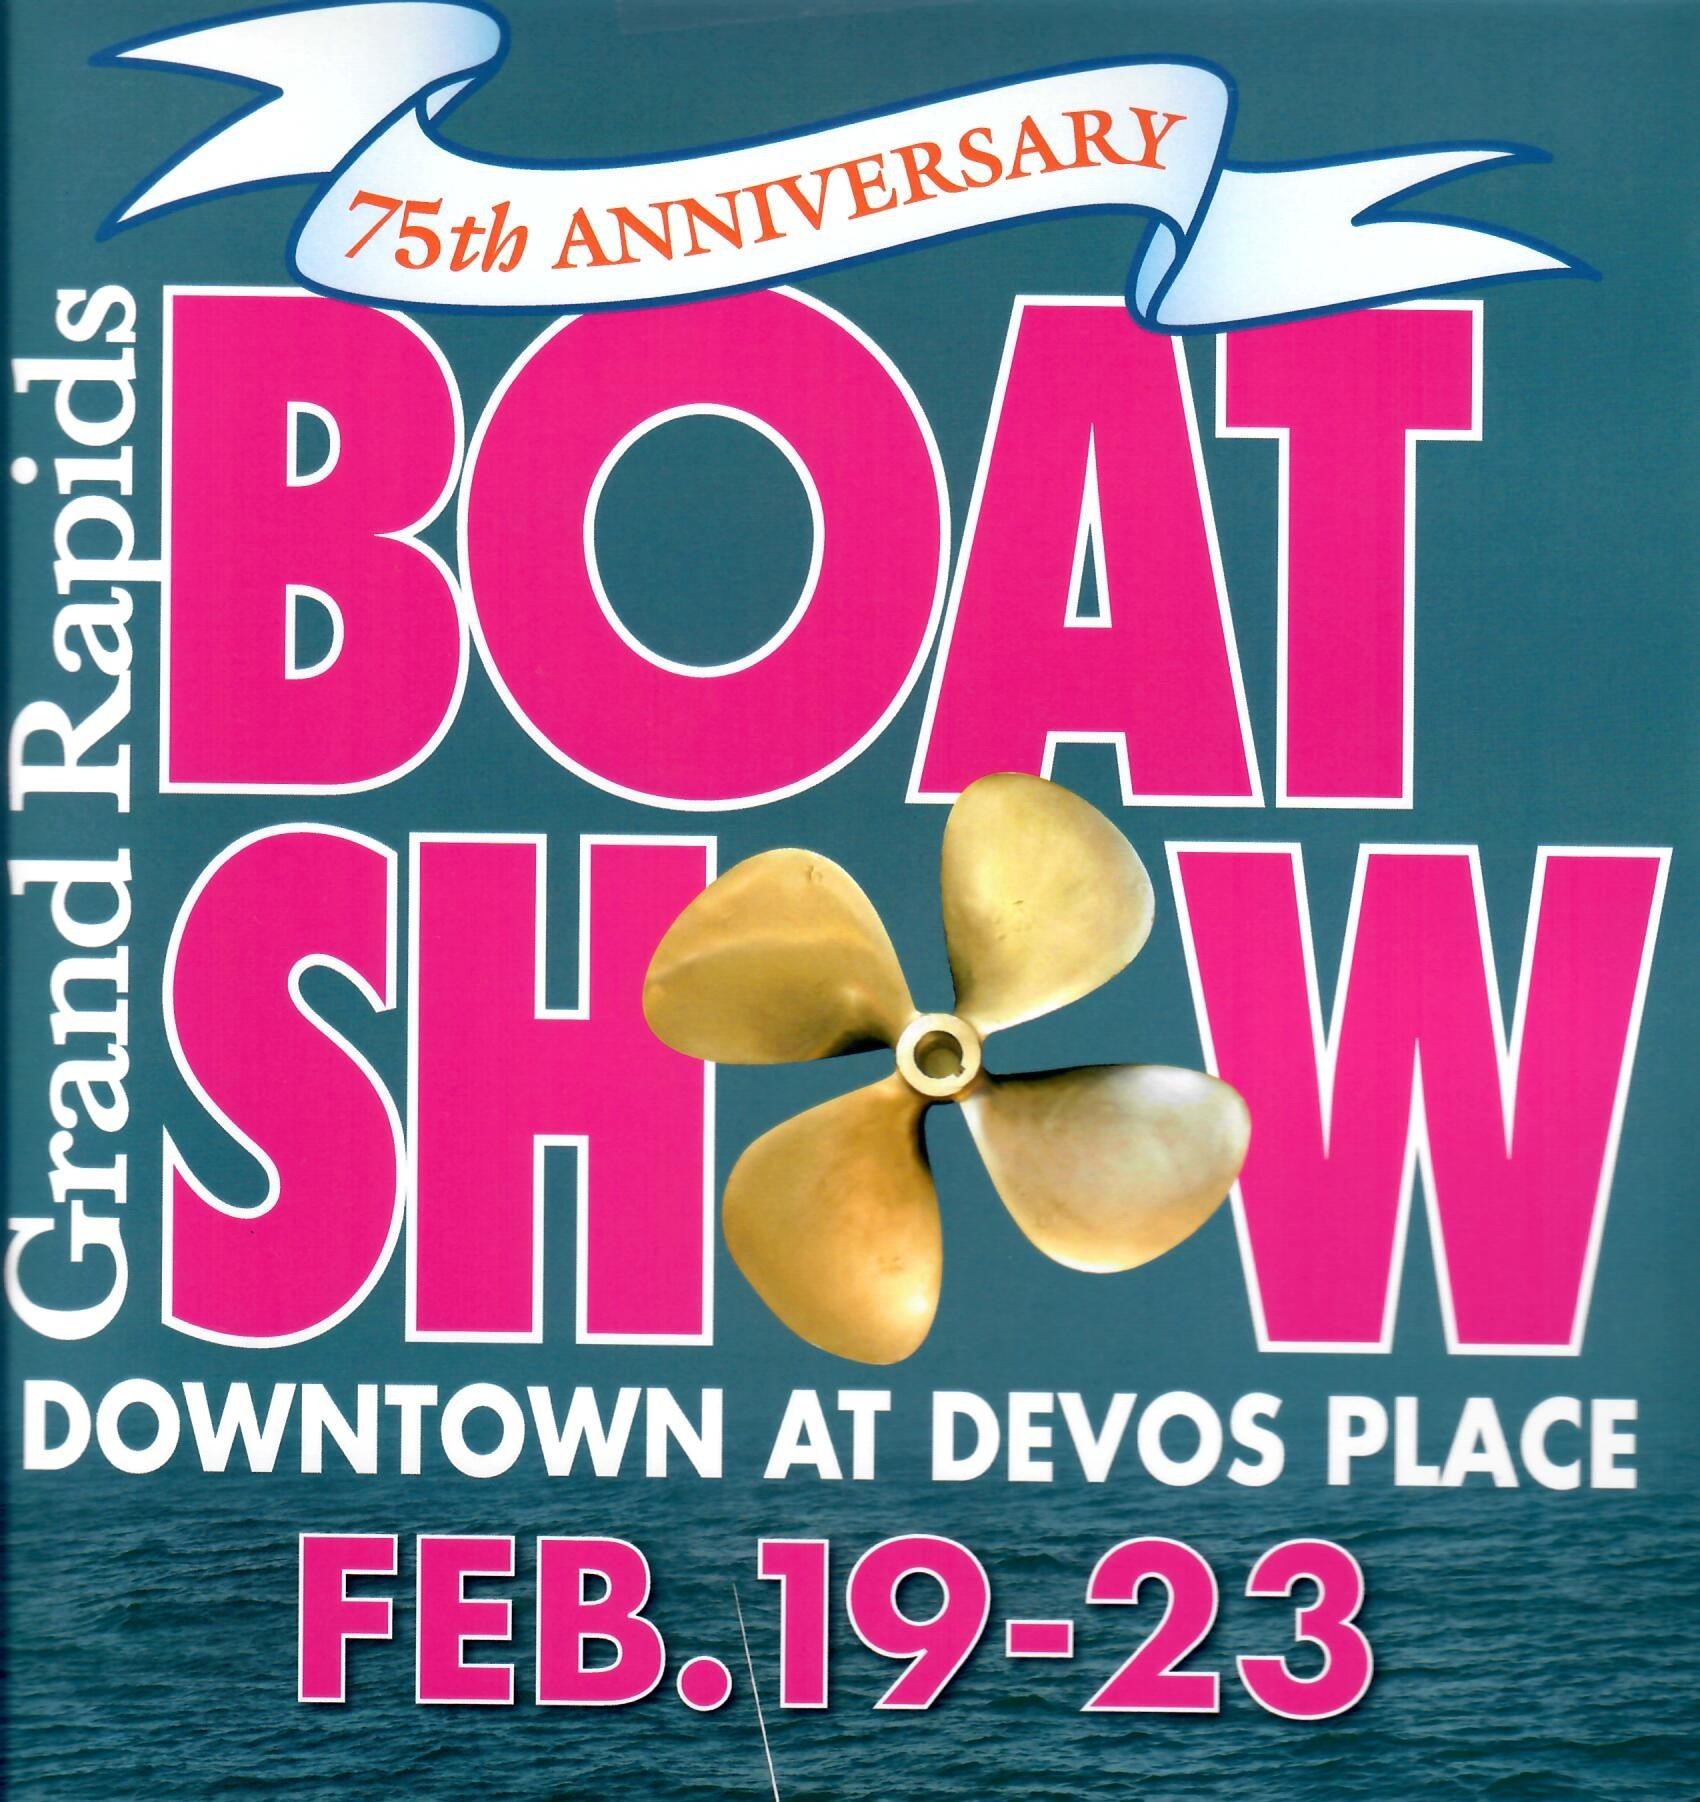 Grand Rapids Boat Show's 75th Anniversary